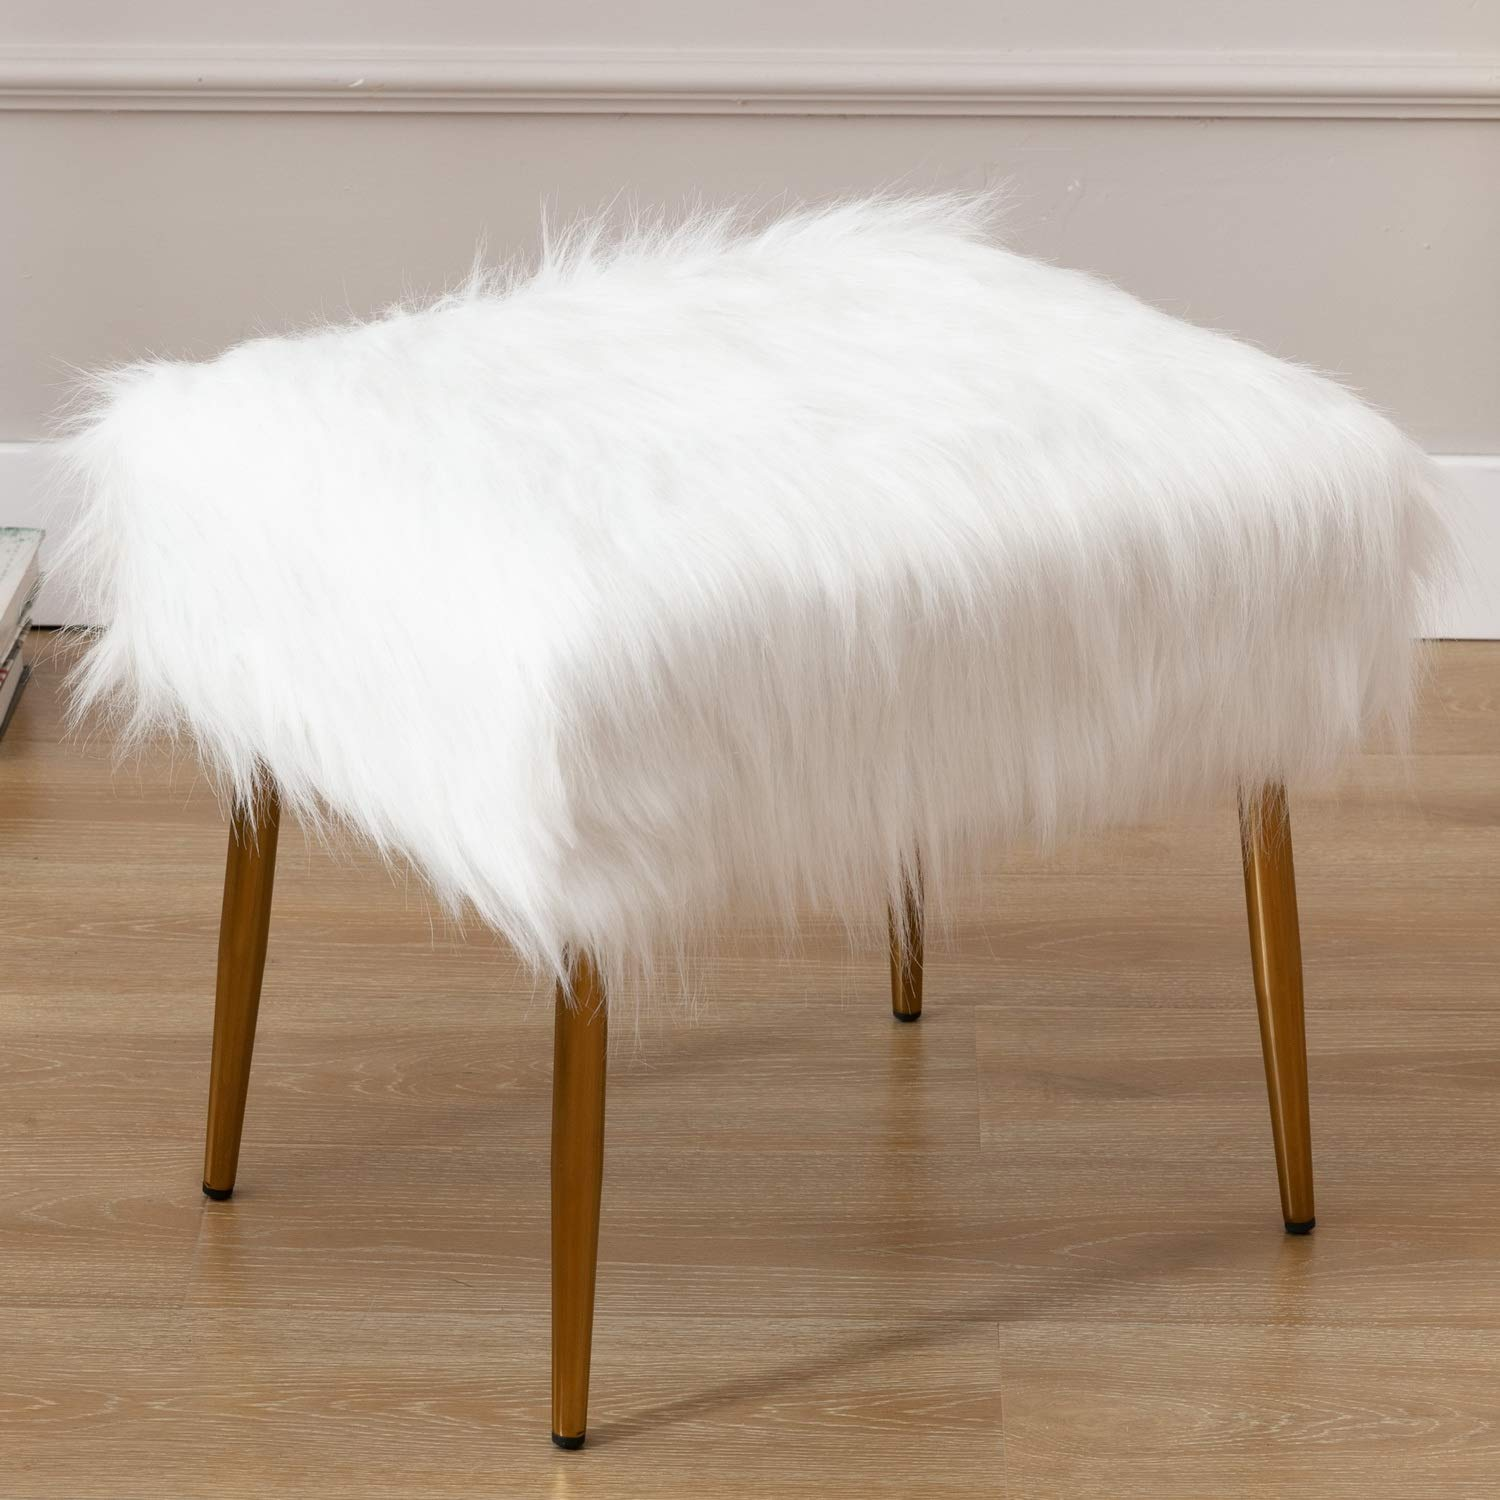 Wahson Shaggy Faux Fur Upholstered Square Accent Ottoman Footrest, Cute Fluffy Vanity Stool, for Living Room, Bedroom, Bathroom, Den, Kids Study Room, 20'' W X 16'' D, White